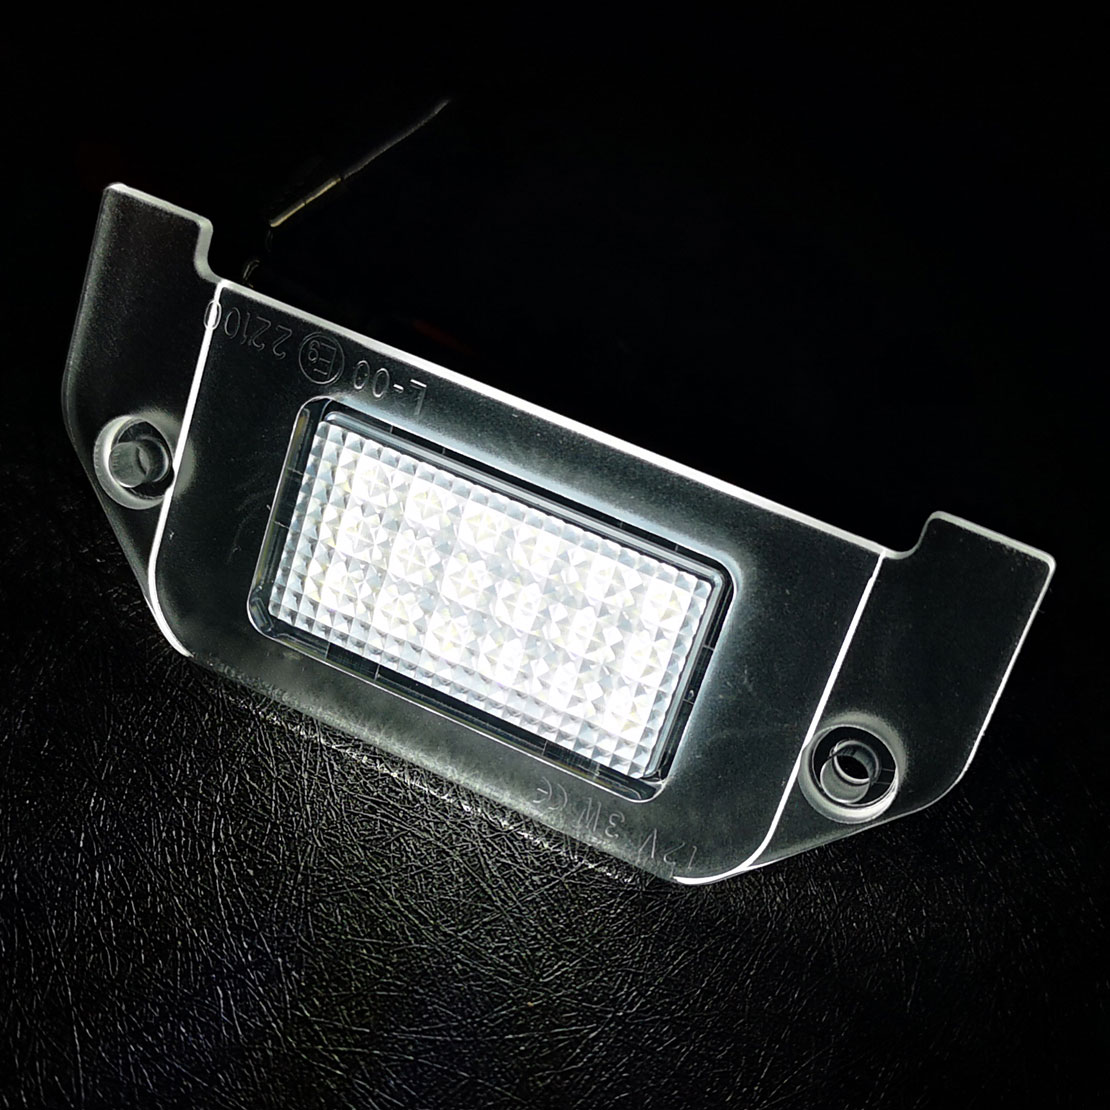 18 LED Car White Number License Plate Light Lamp Fit for <font><b>Dodge</b></font> <font><b>Charger</b></font> Challenger Dart Avenger Magnum image